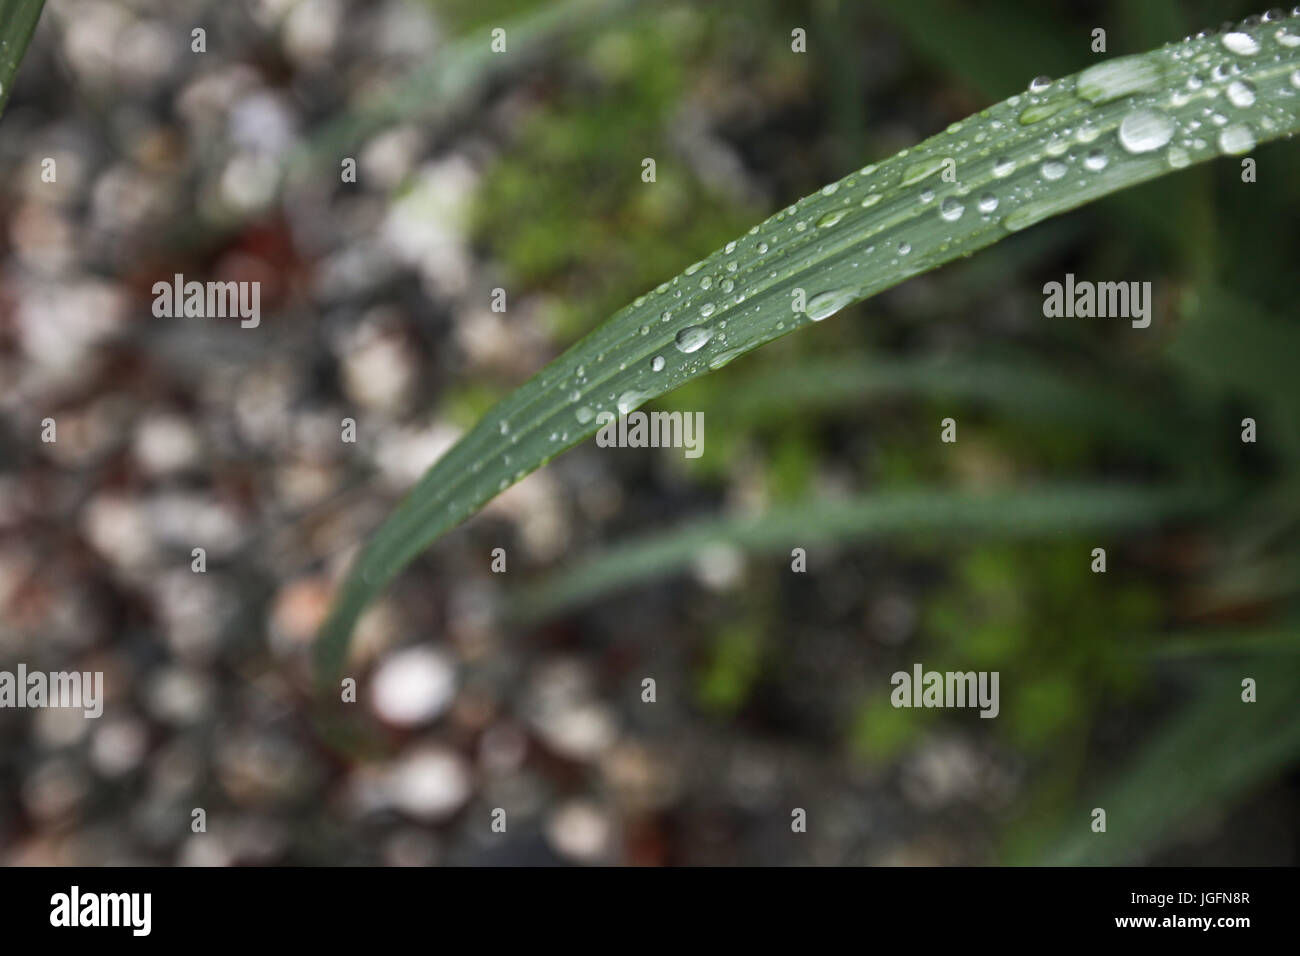 Dew and water droplets rest on a blade of grass. - Stock Image